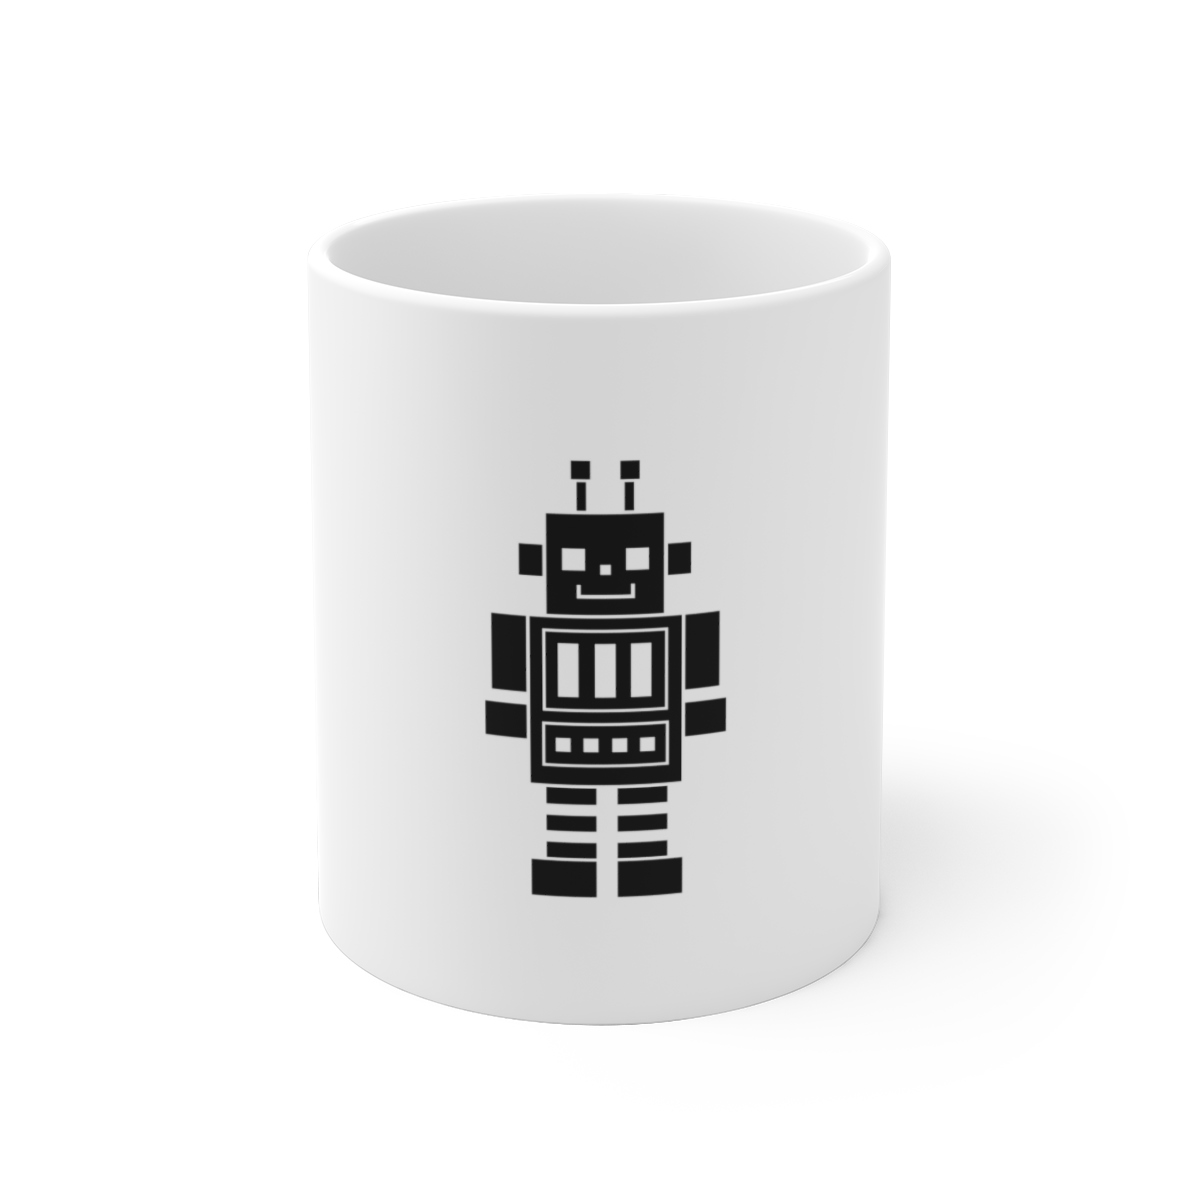 Happy Robot Ceramic Mug - Happy Robot Ceramic Mug - 15oz - .: White ceramic .: 11 oz. (0.33 l) and 15 oz. (0.44 l) .: Rounded corners .: C-handle